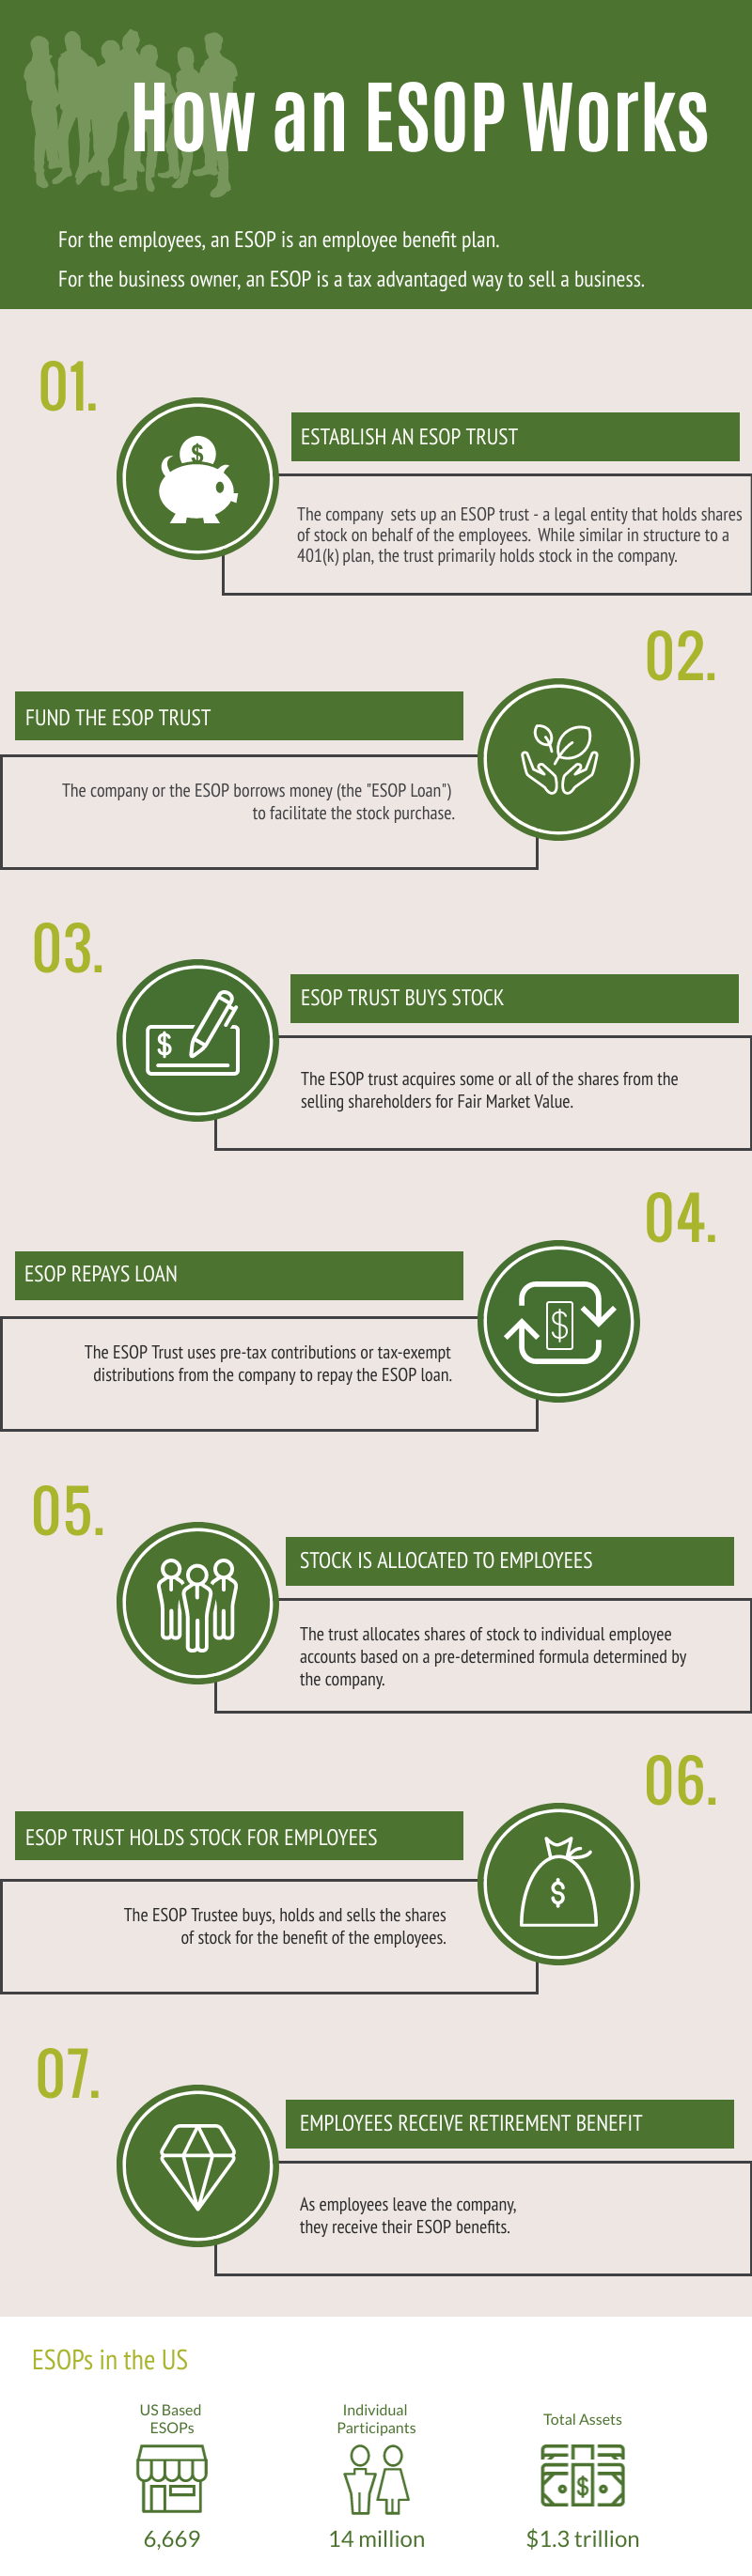 How an ESOP Works